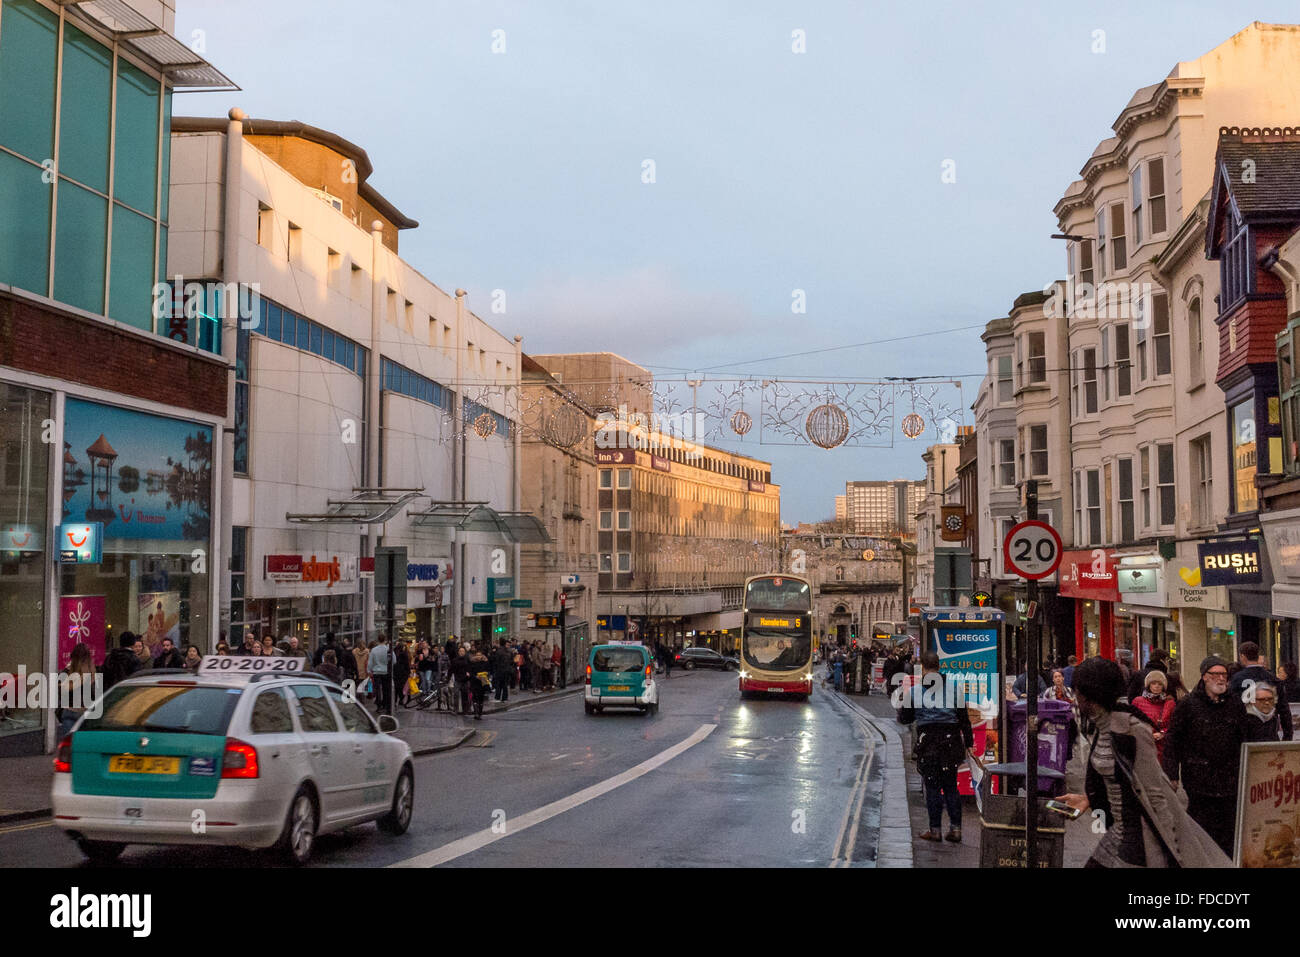 Buses and shoppers in Brighton city centre. - Stock Image